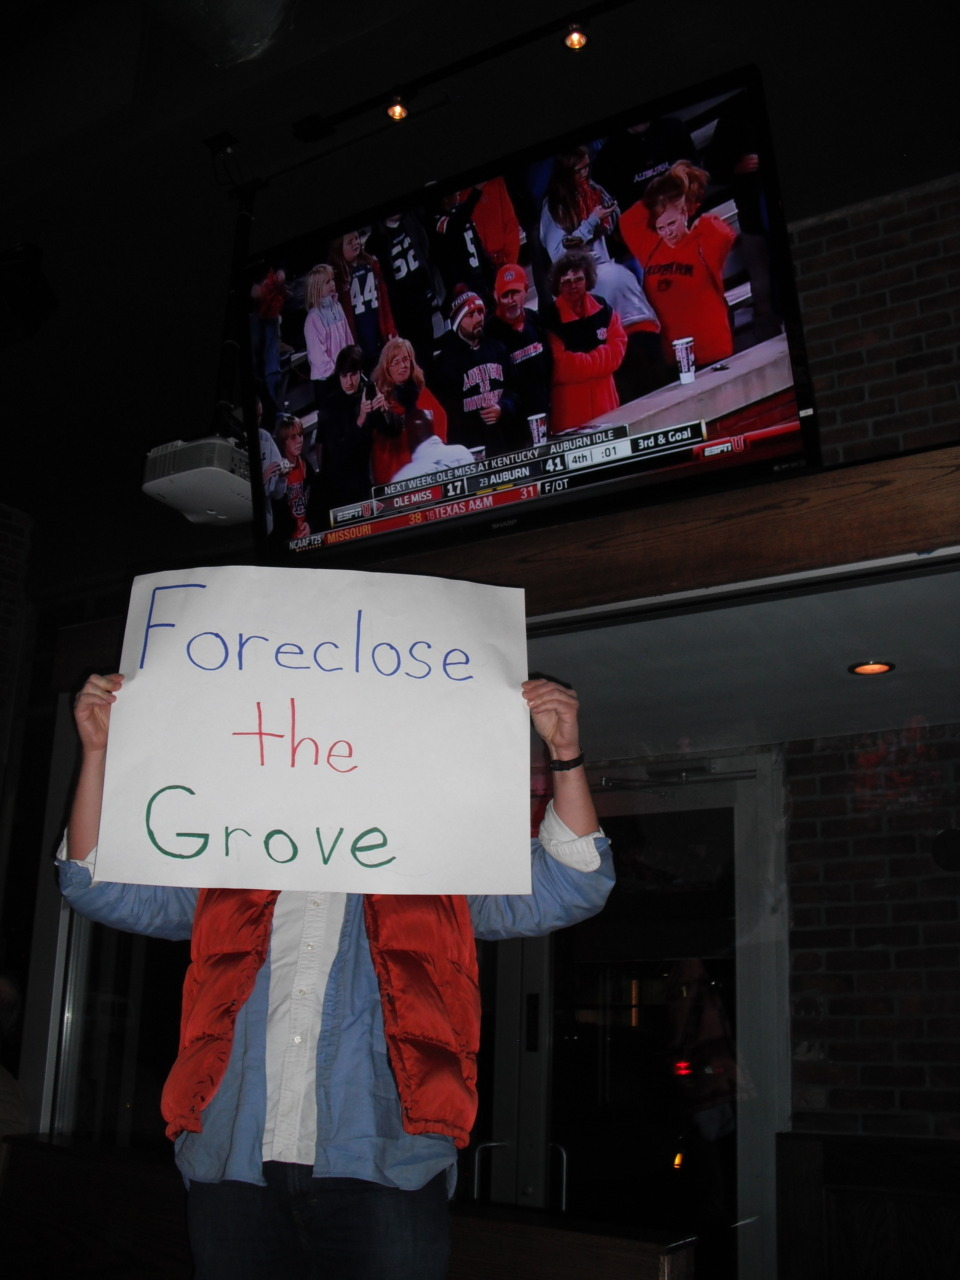 Foreclose the Grove